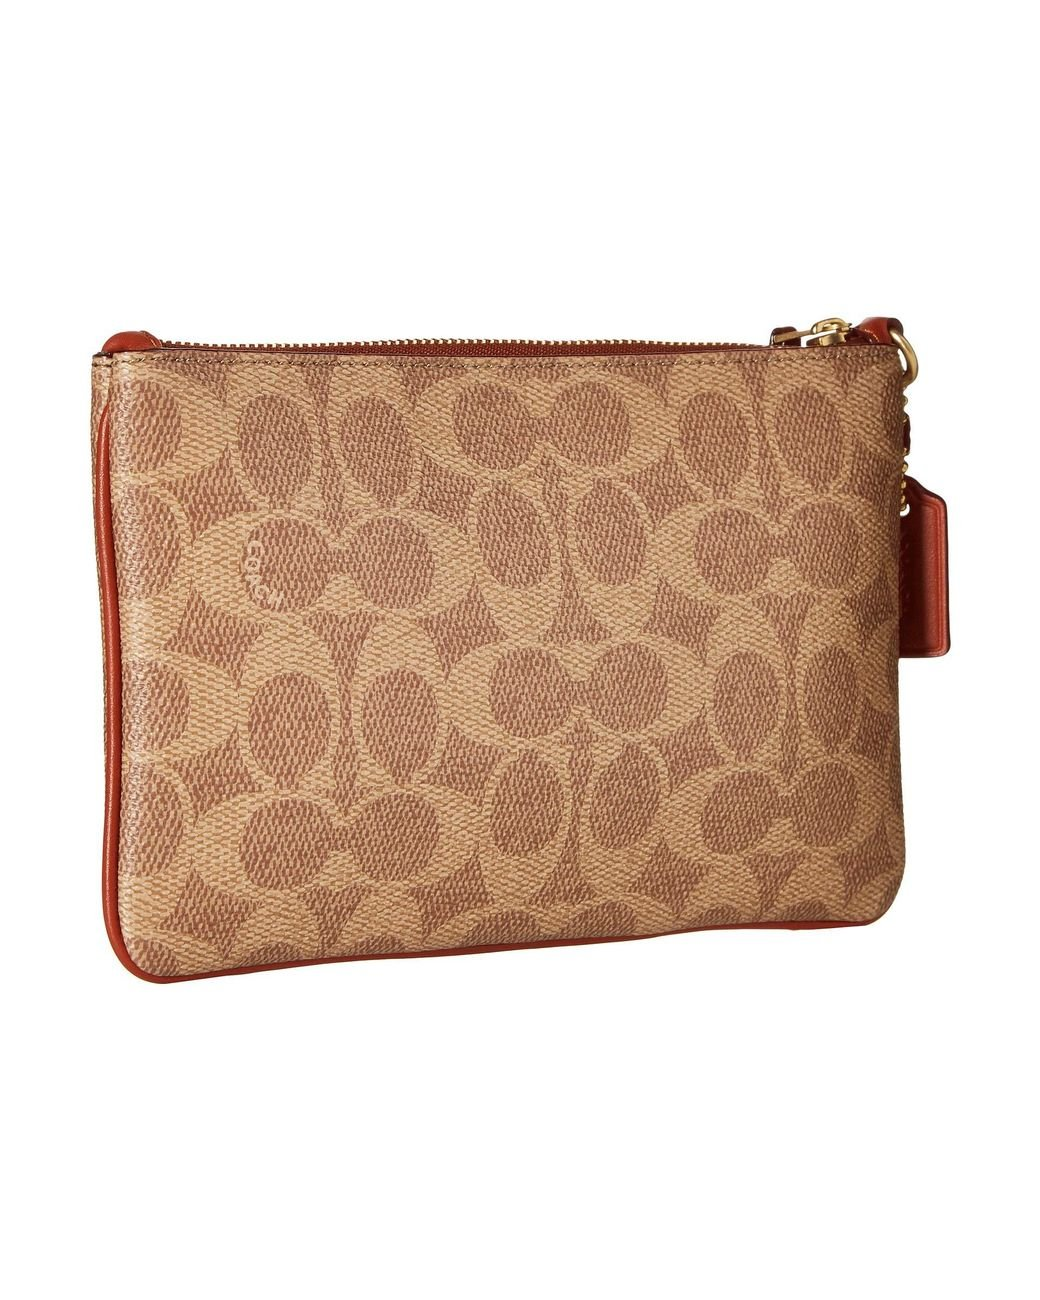 524c39766 COACH Color Block Coated Canvas Signature Small Wristlet in Brown - Lyst